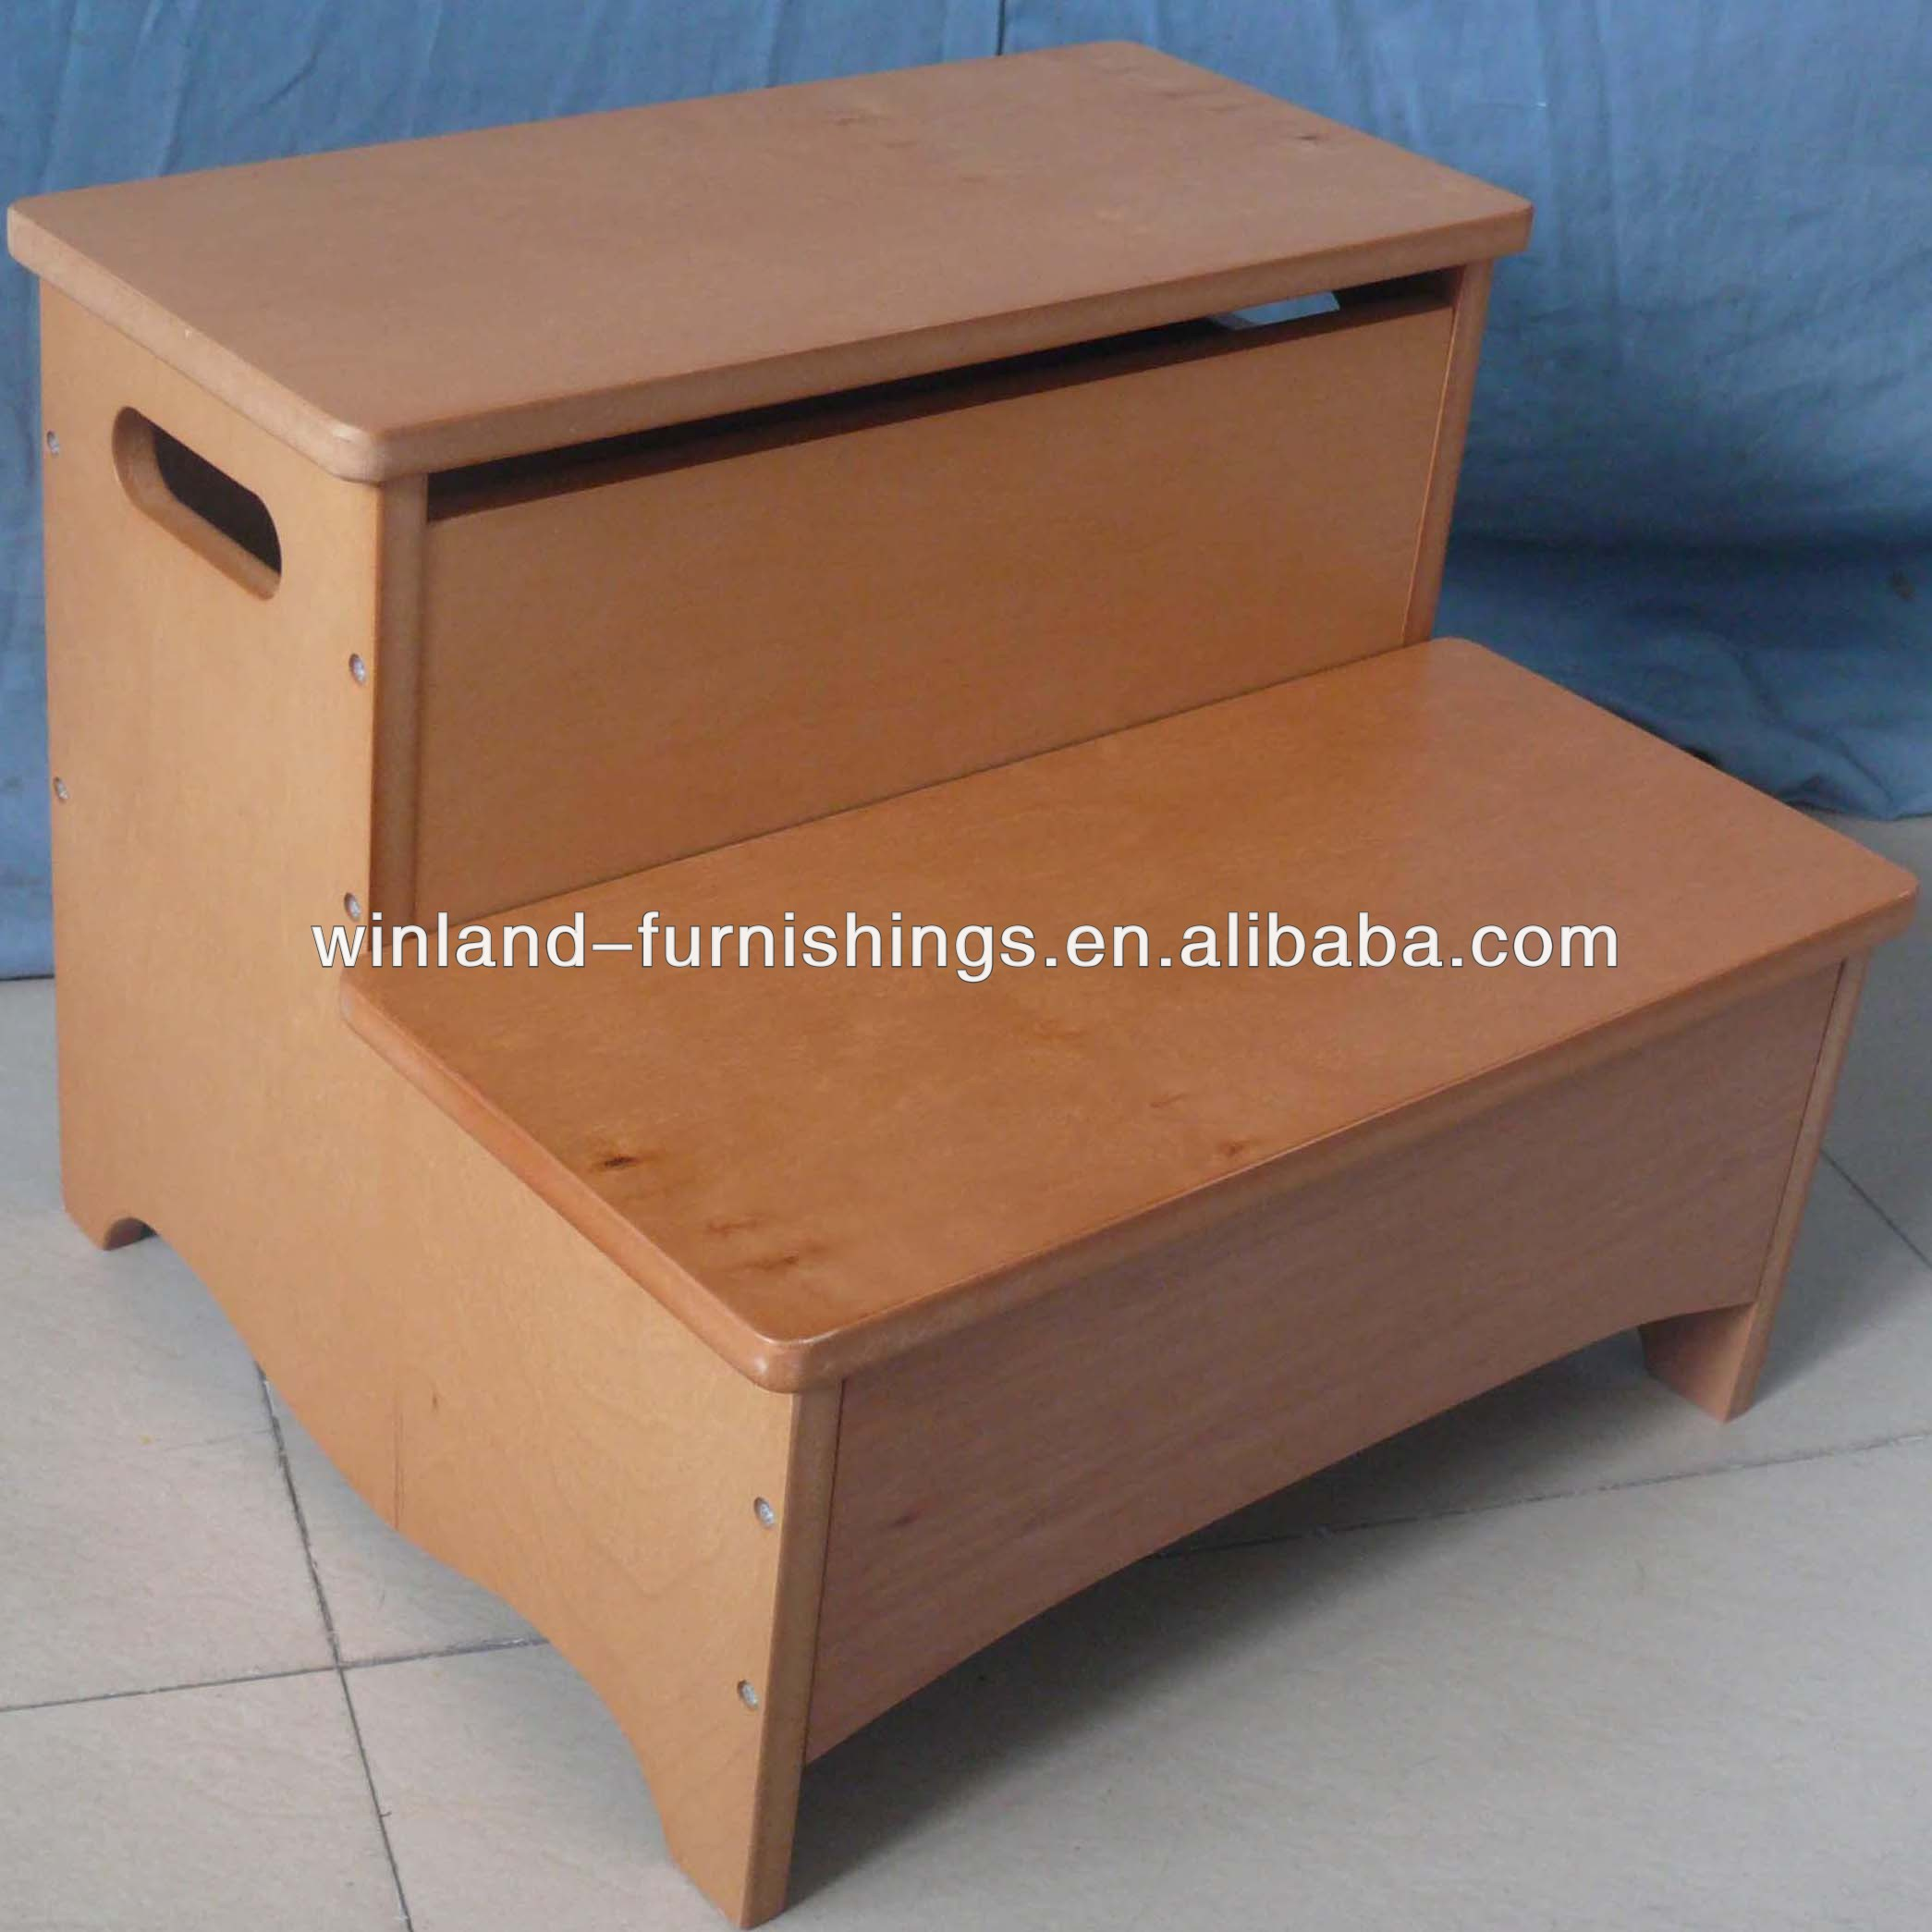 Wonderful Kids Wooden Step Stool With Storage   Buy Step Stool With Storage,Wood Step  Stool,Kids Step Stool Product On Alibaba.com